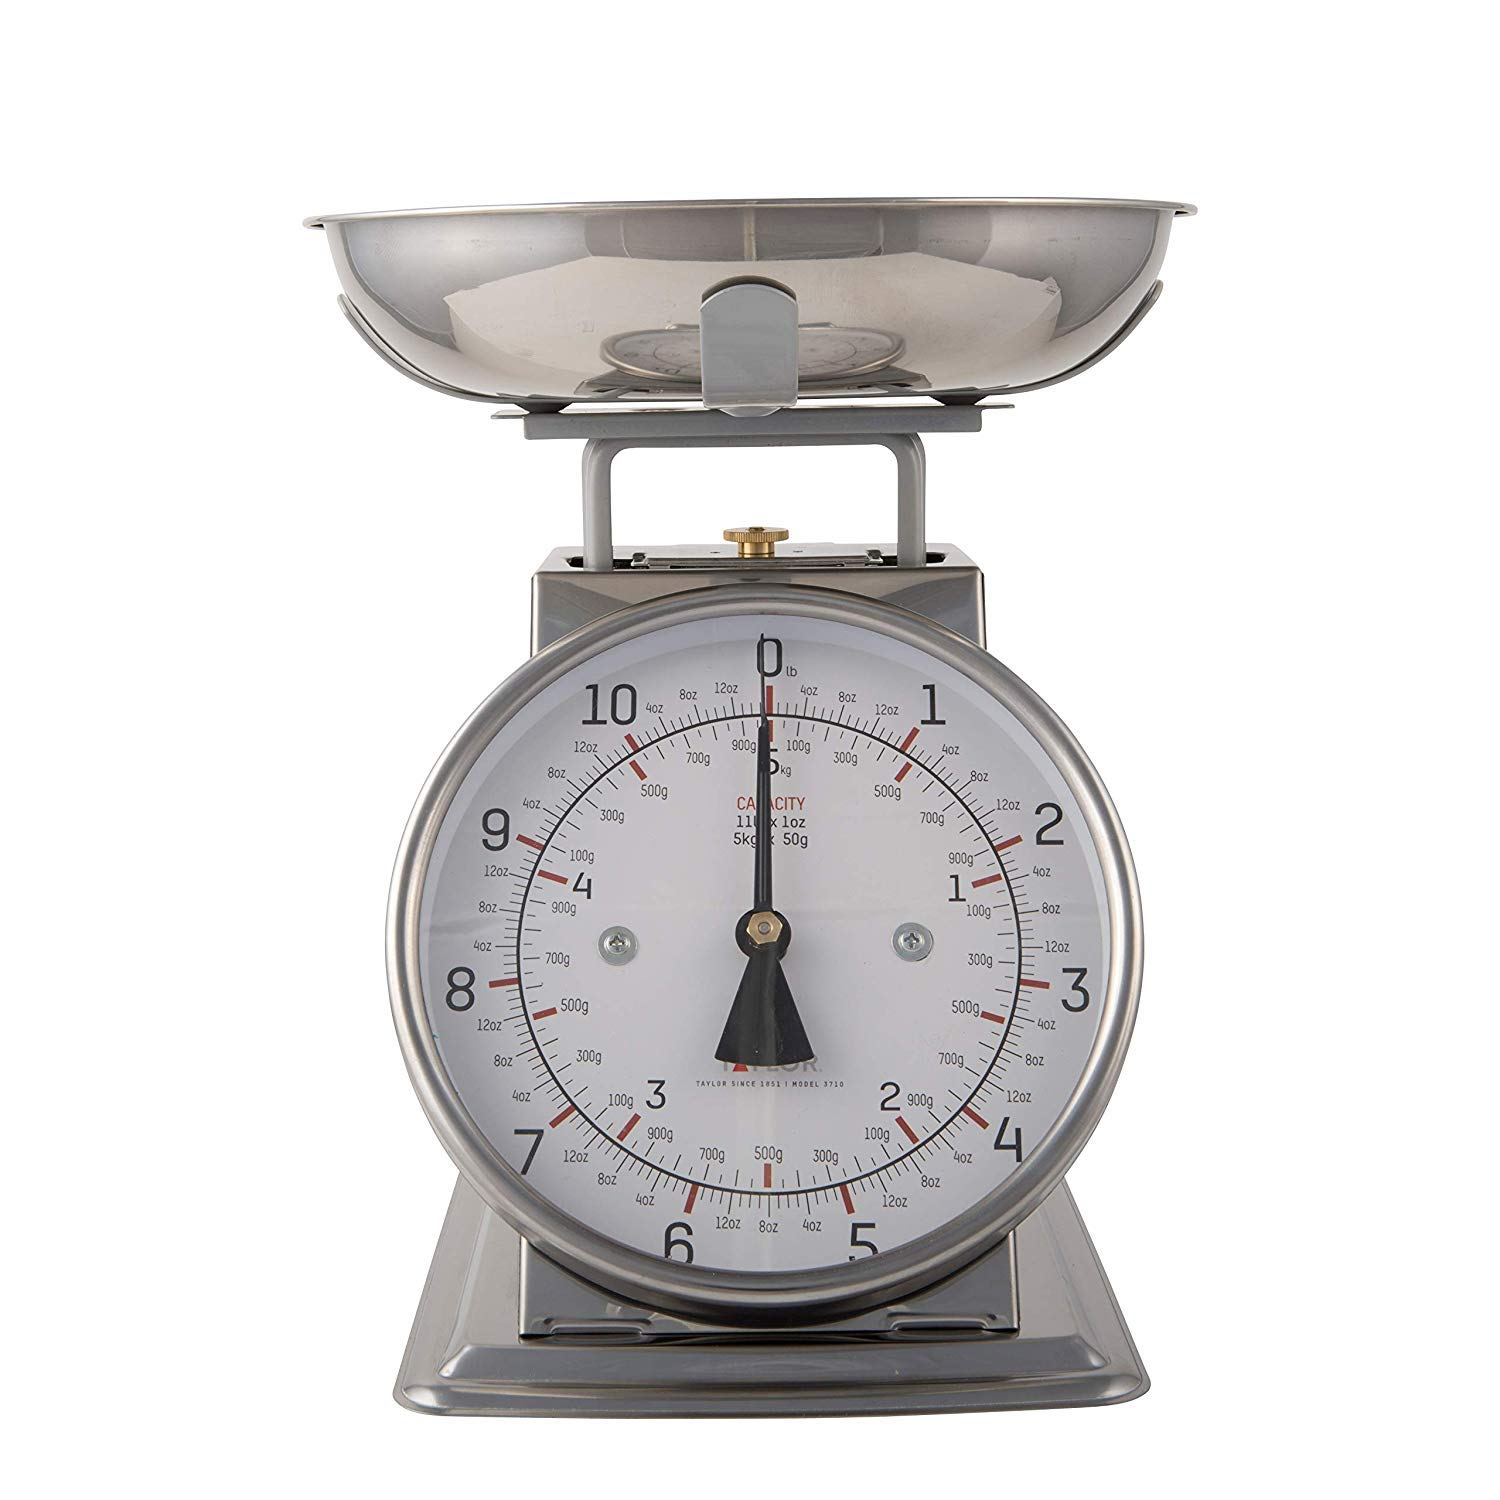 Taylor Stainless Steel Analog Kitchen Scale, 11 Lb. Capacity by Taylor Precision Products